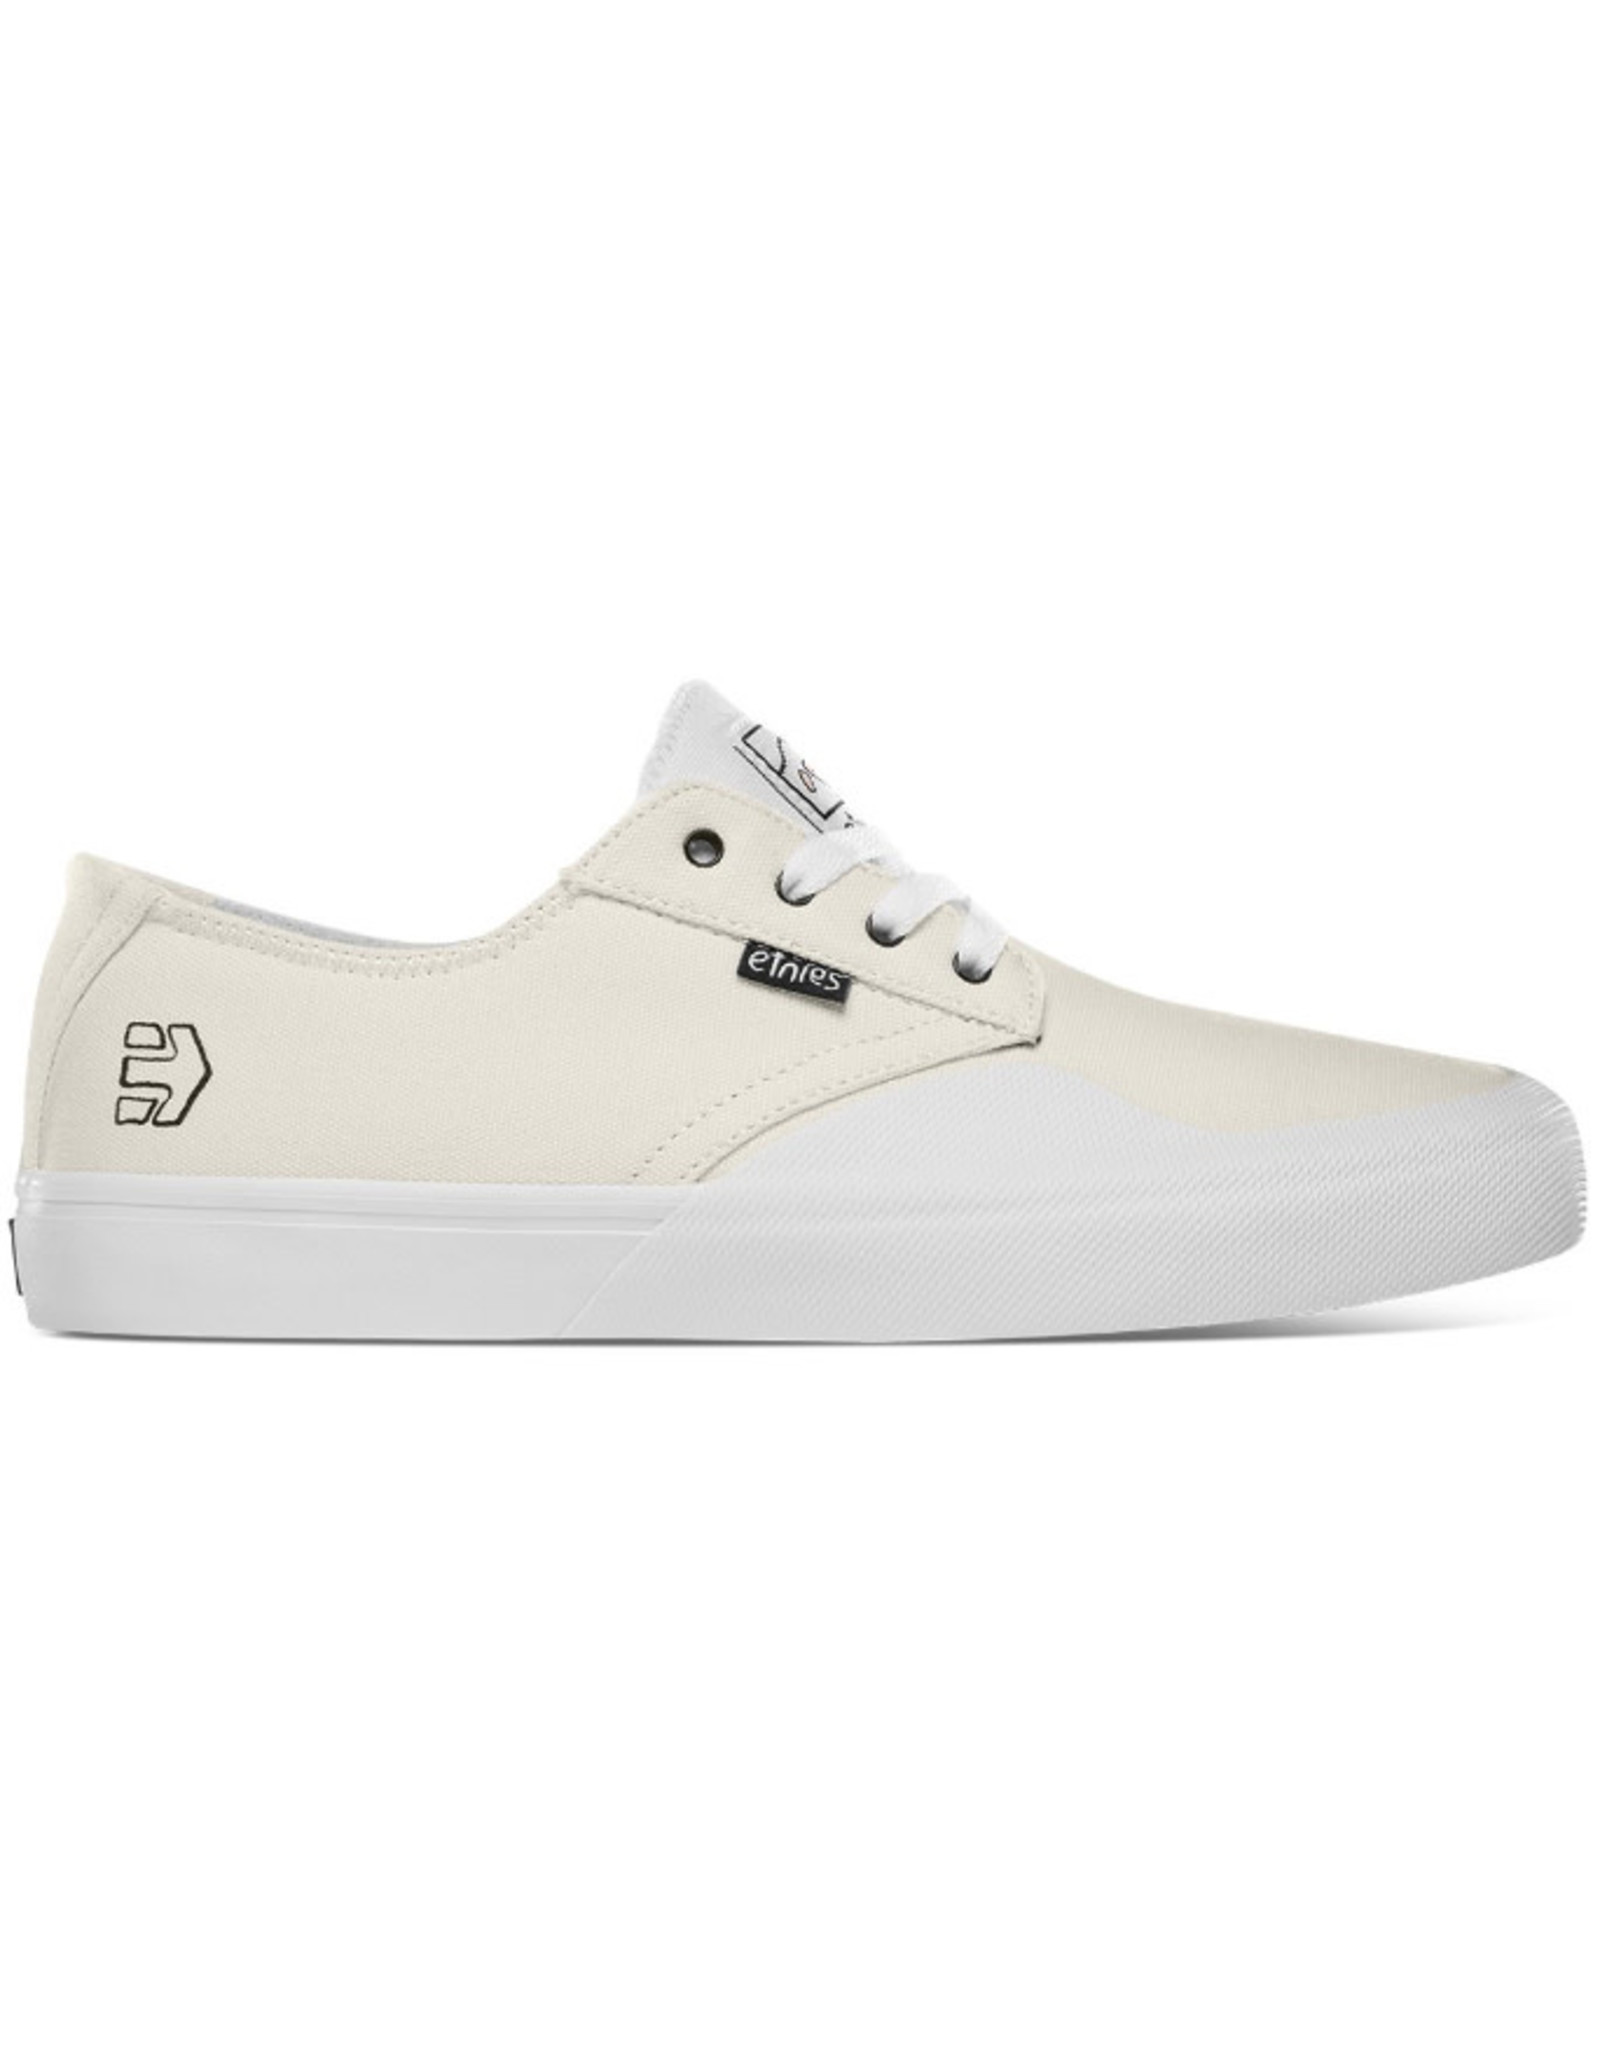 etnies Jameson Vulc LS X Sheep